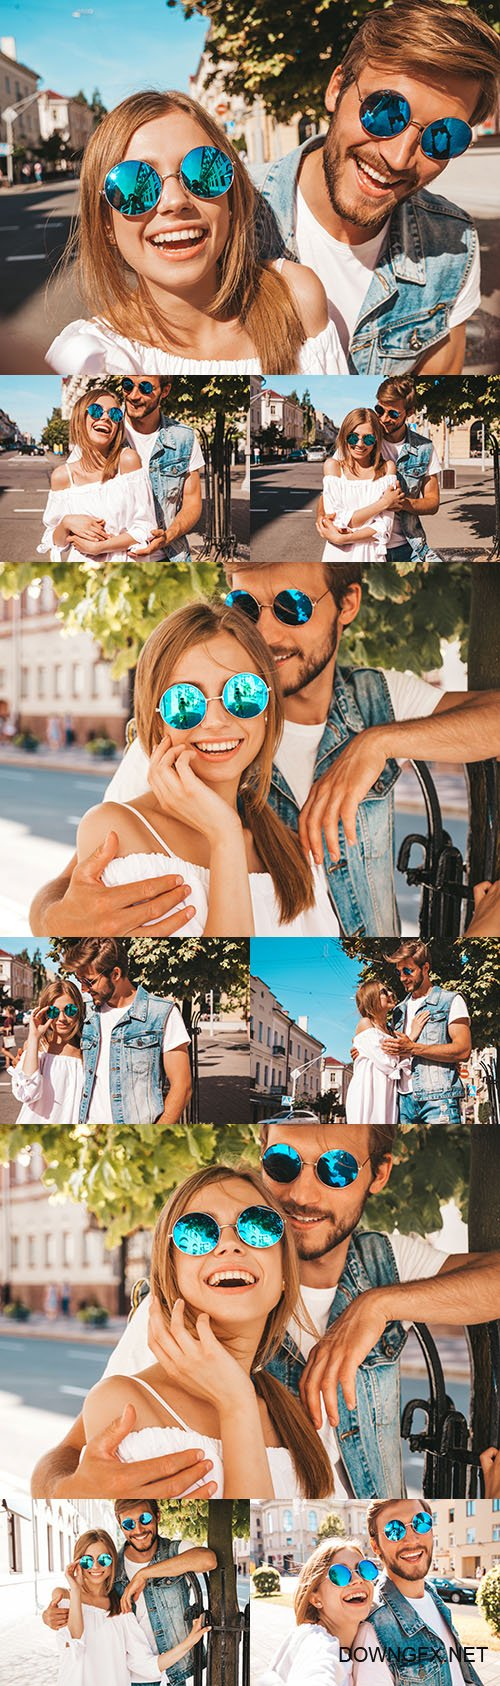 Smile romantic beautiful girl and boyfriend